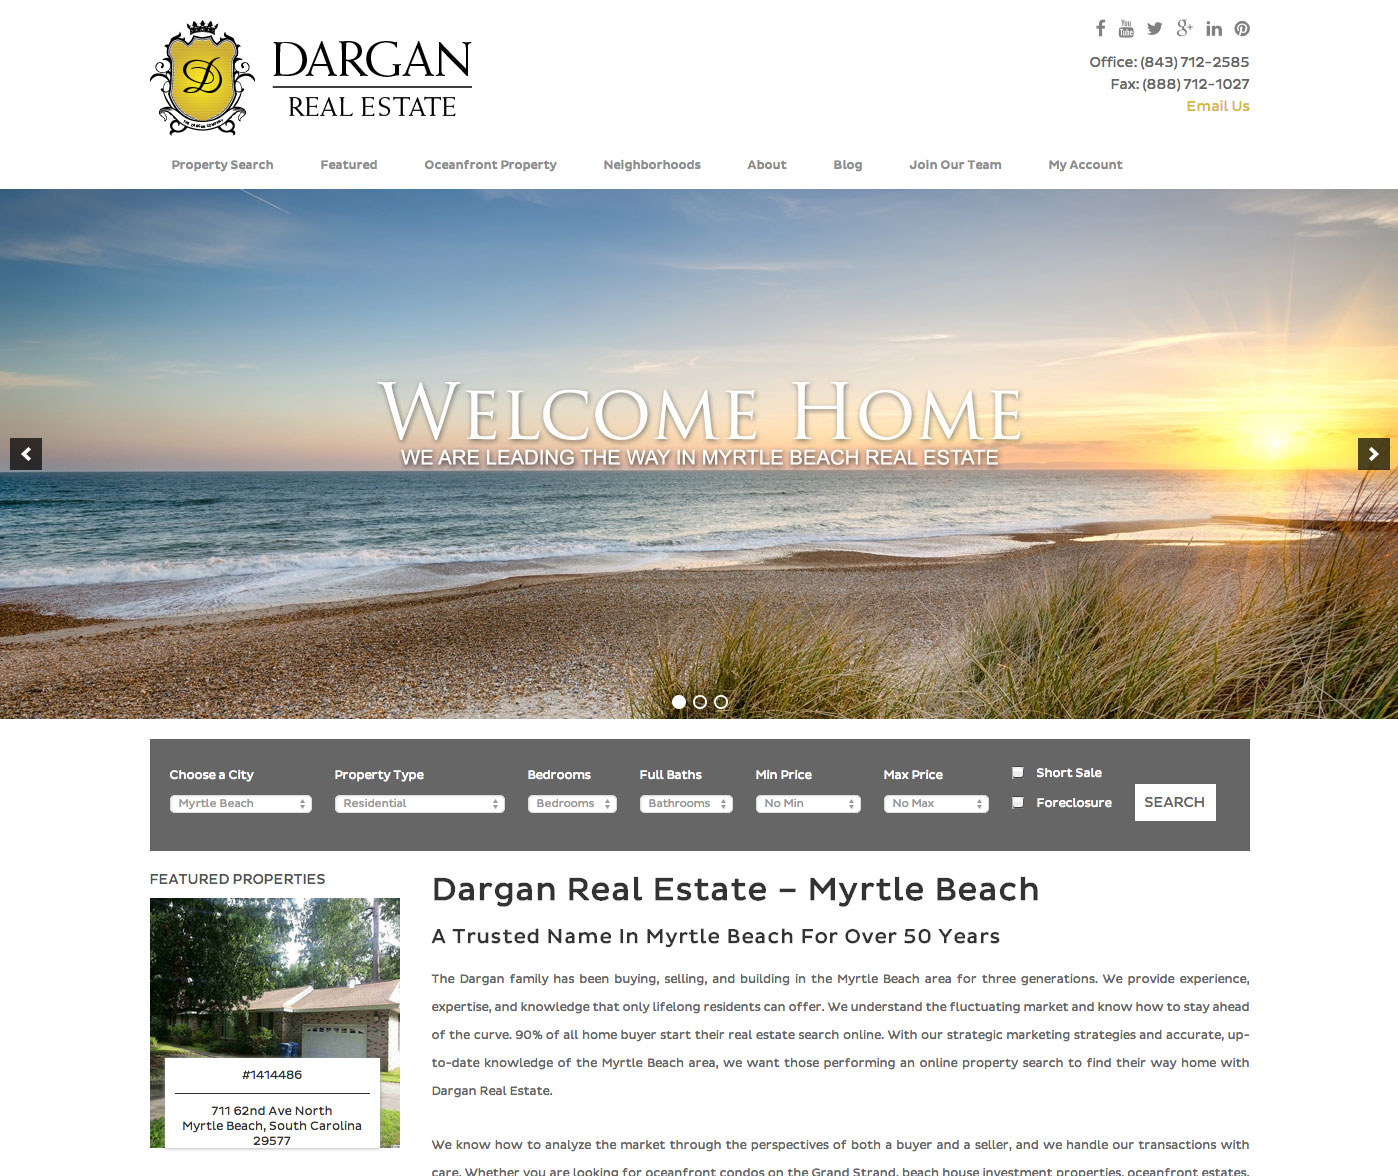 Dargan Real Estate